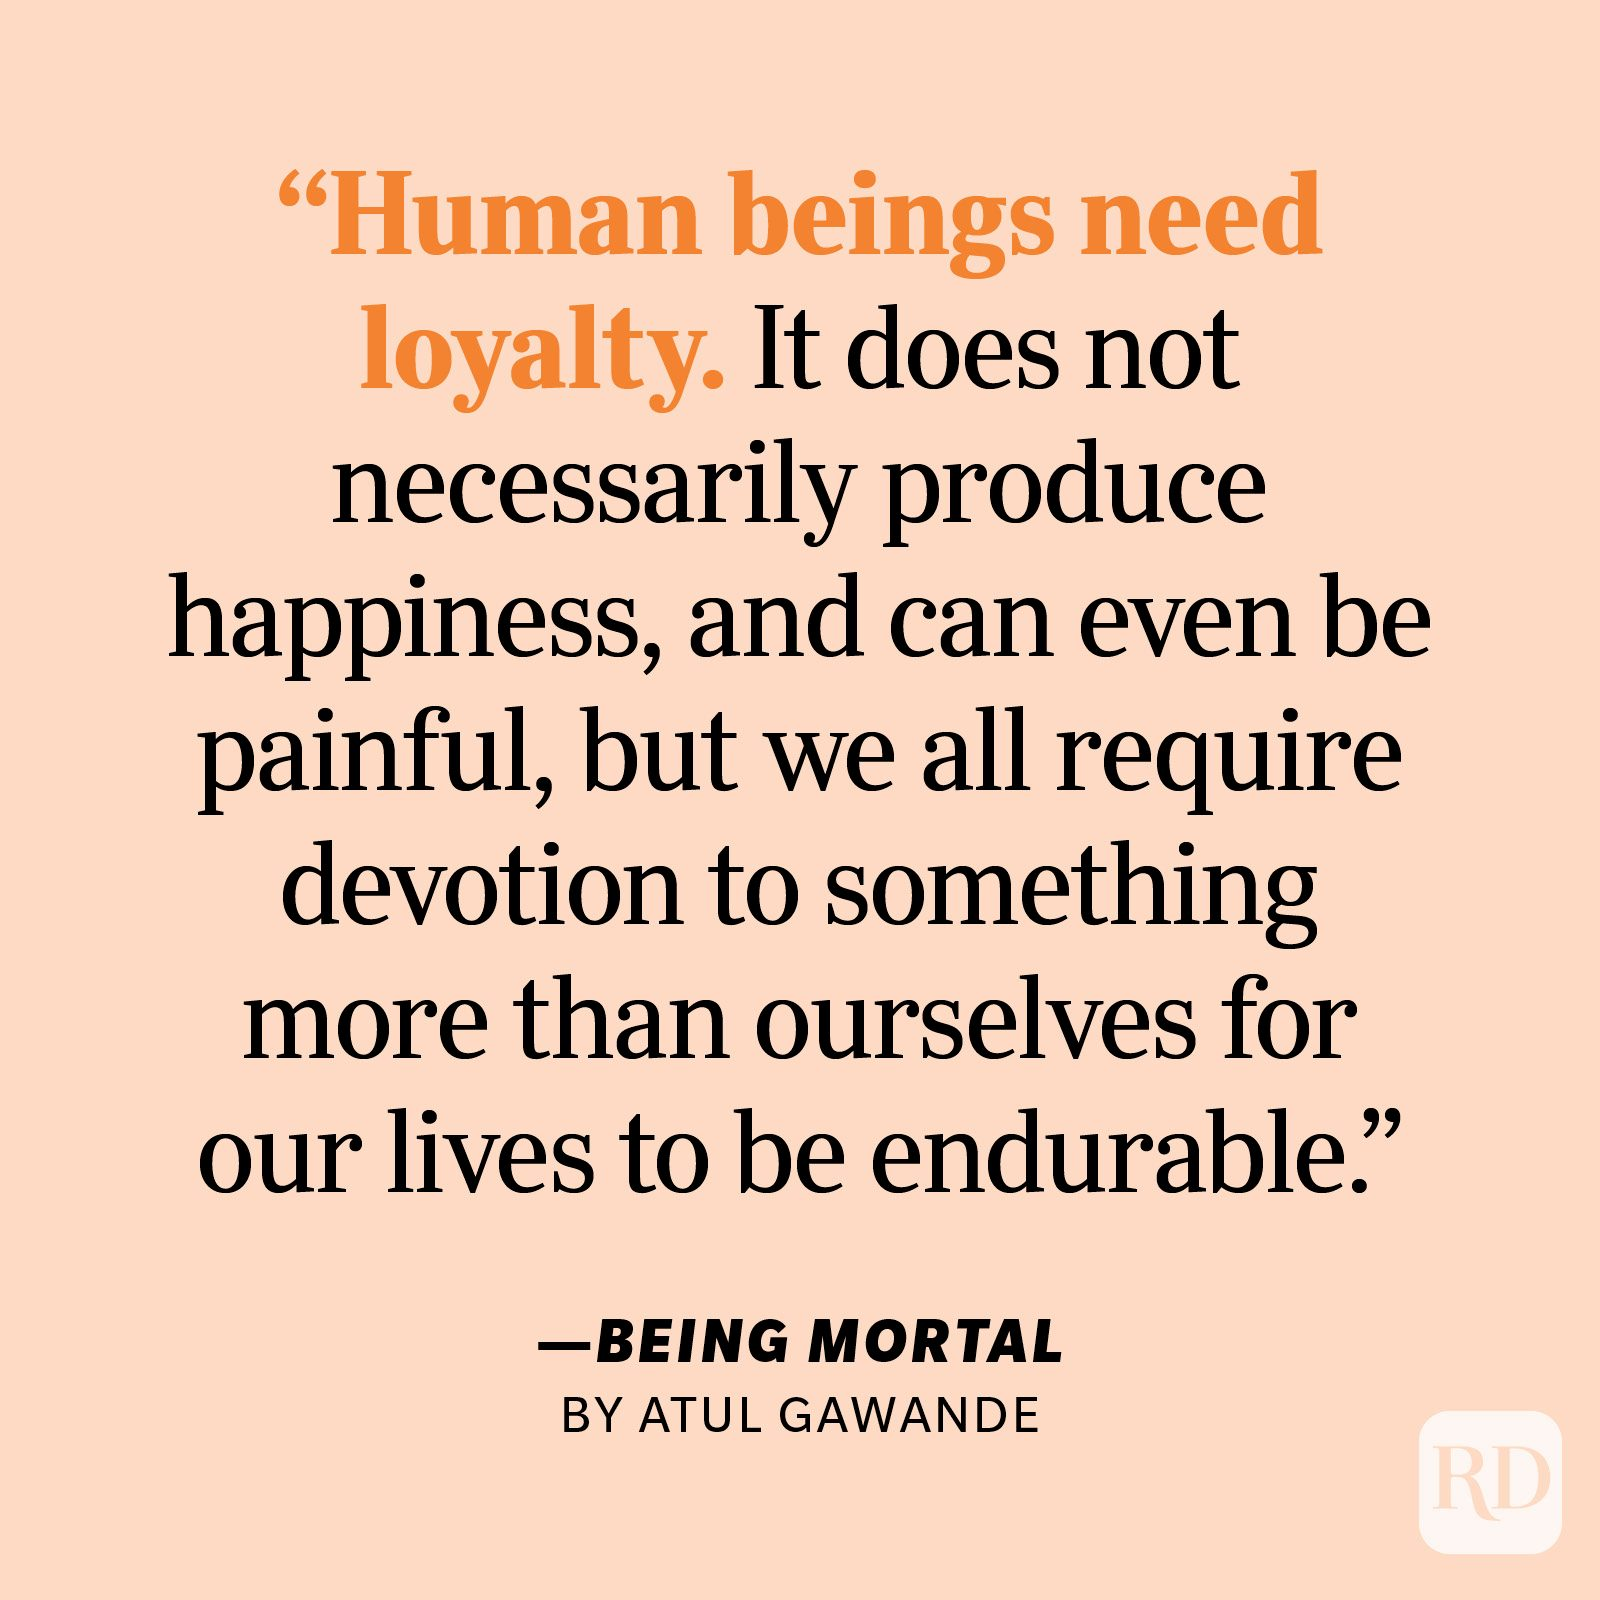 """Being Mortal by Atul Gawande """"Human beings need loyalty. It does not necessarily produce happiness, and can even be painful, but we all require devotion to something more than ourselves for our lives to be endurable. Without it, we have only our desires to guide us, and they are fleeting, capricious, and insatiable."""""""